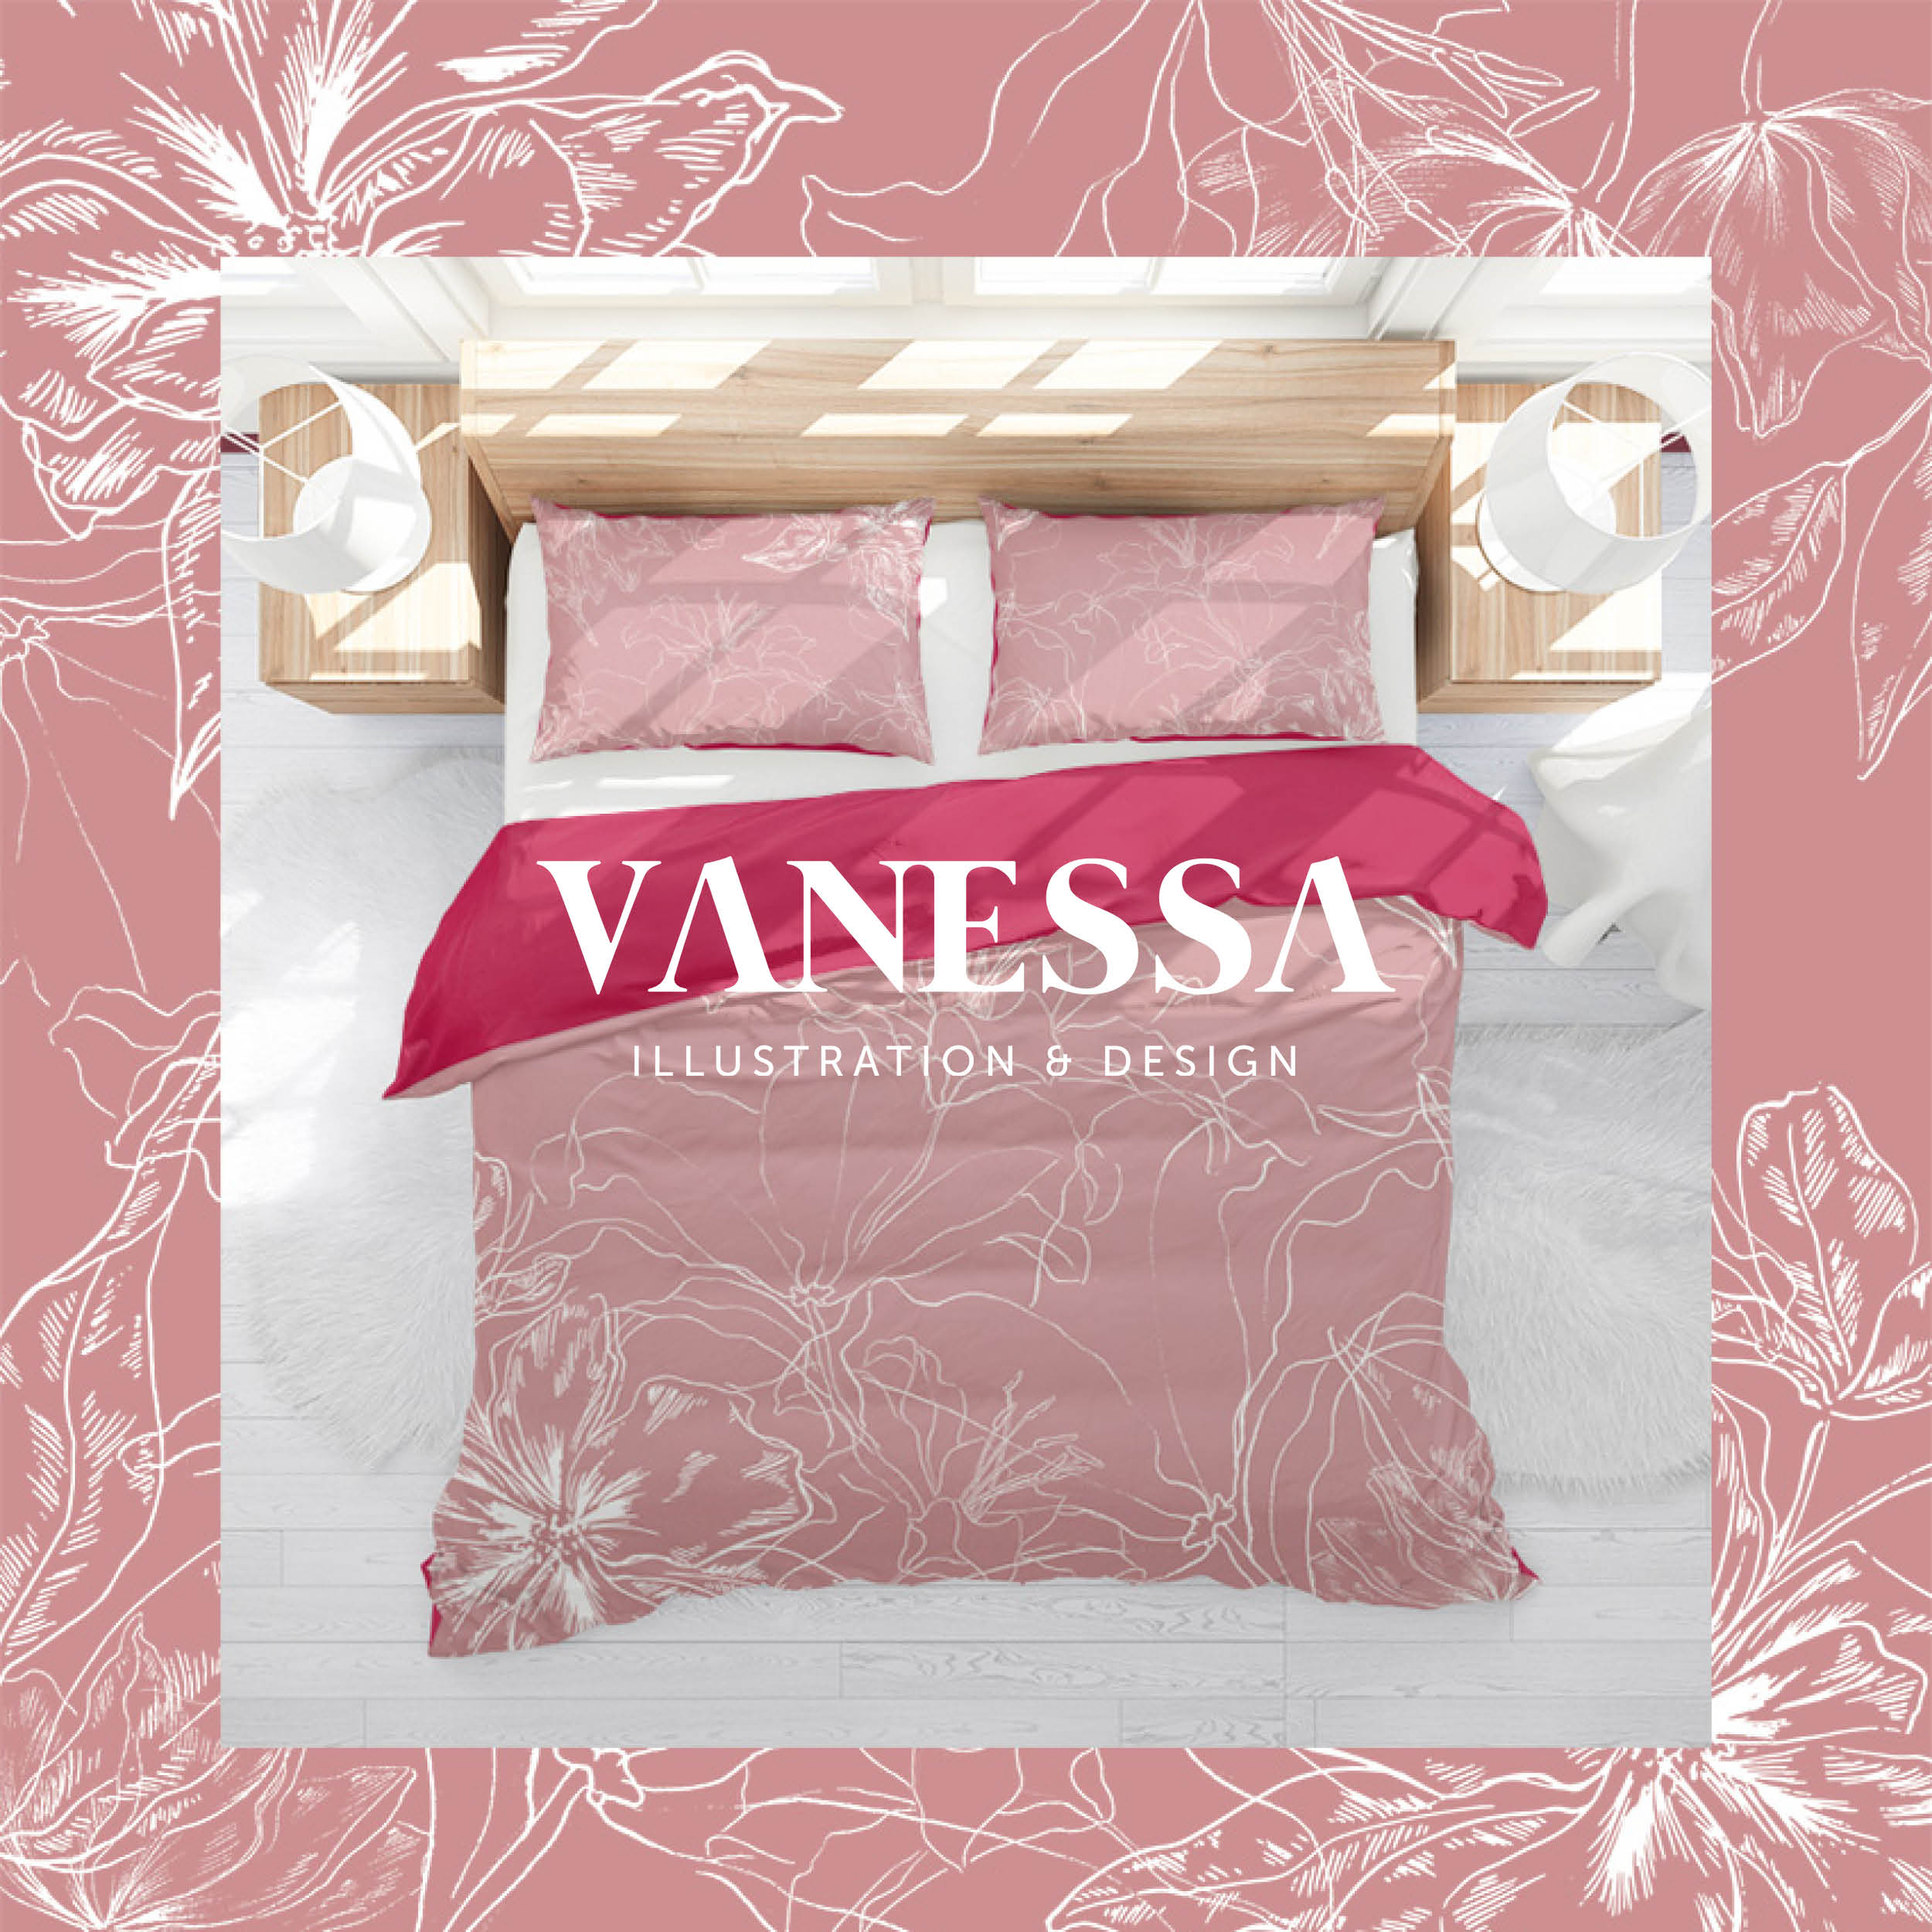 Vanessa Vanderhaven Illustration and Design7.jpg